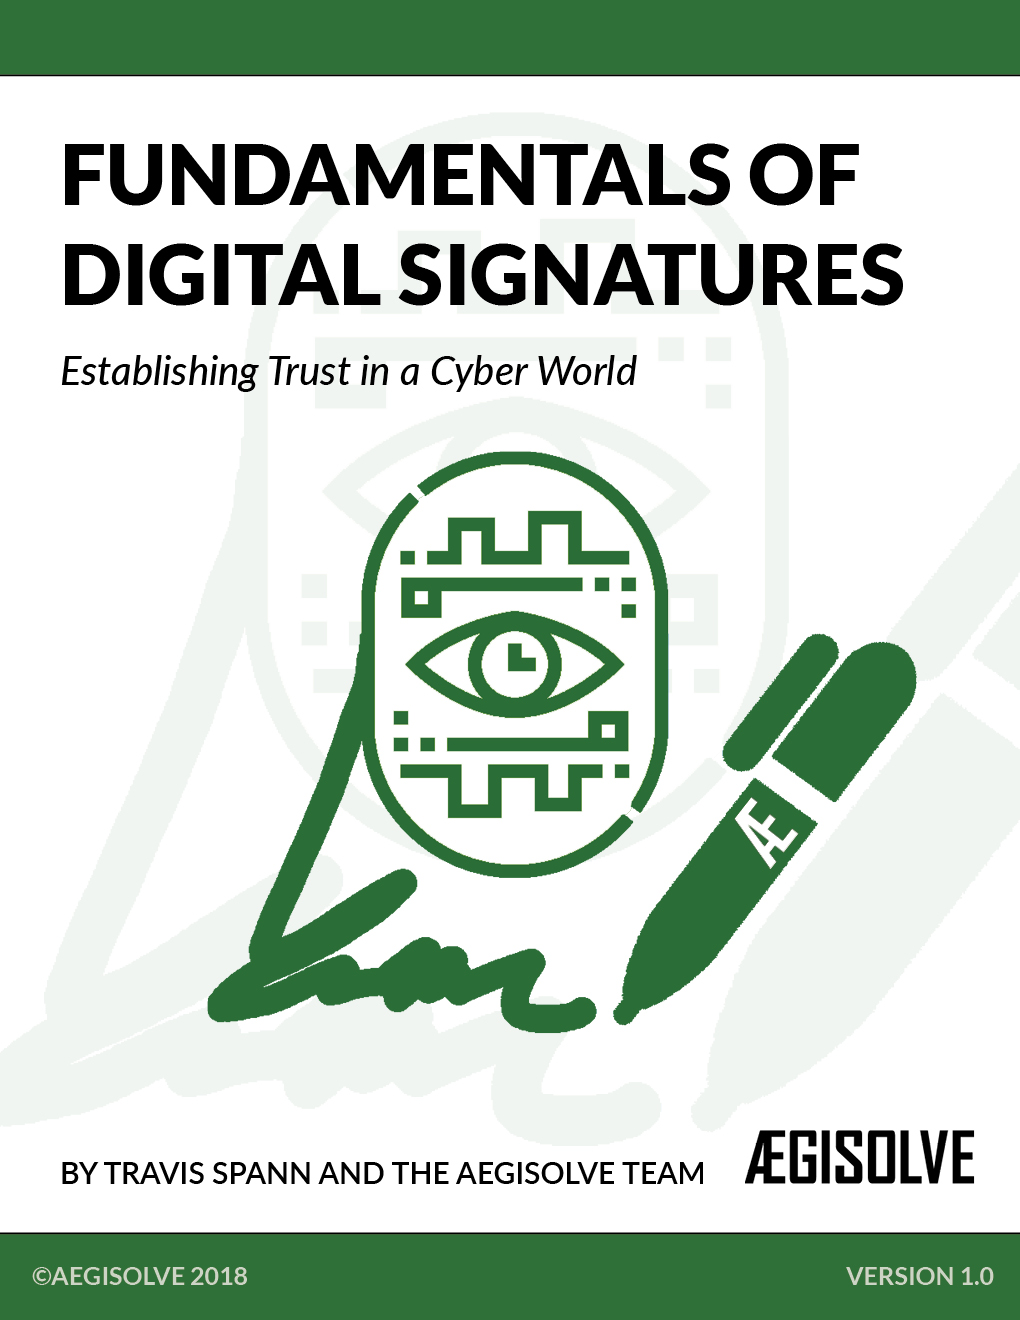 Fundamentals of Digital Signatures ebook guide